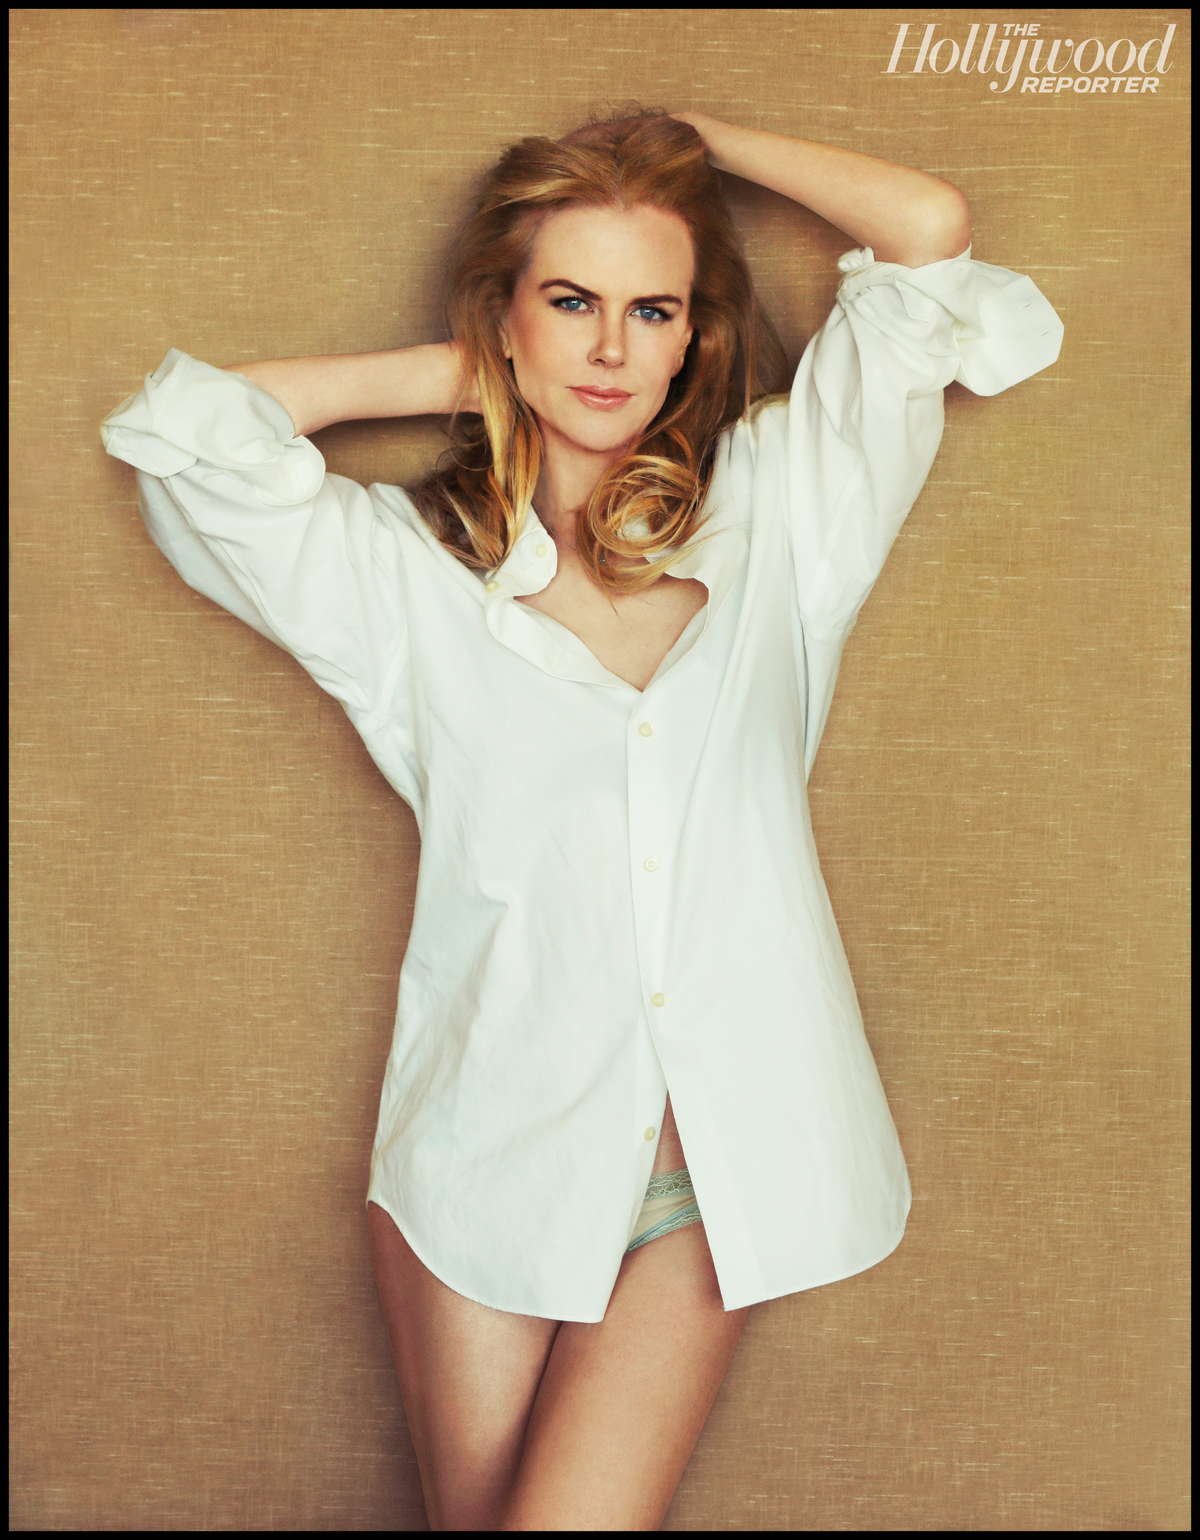 Nicole Kidman In Hot photoshoot for Hollywood Reporter 2013 Ruven Afandor